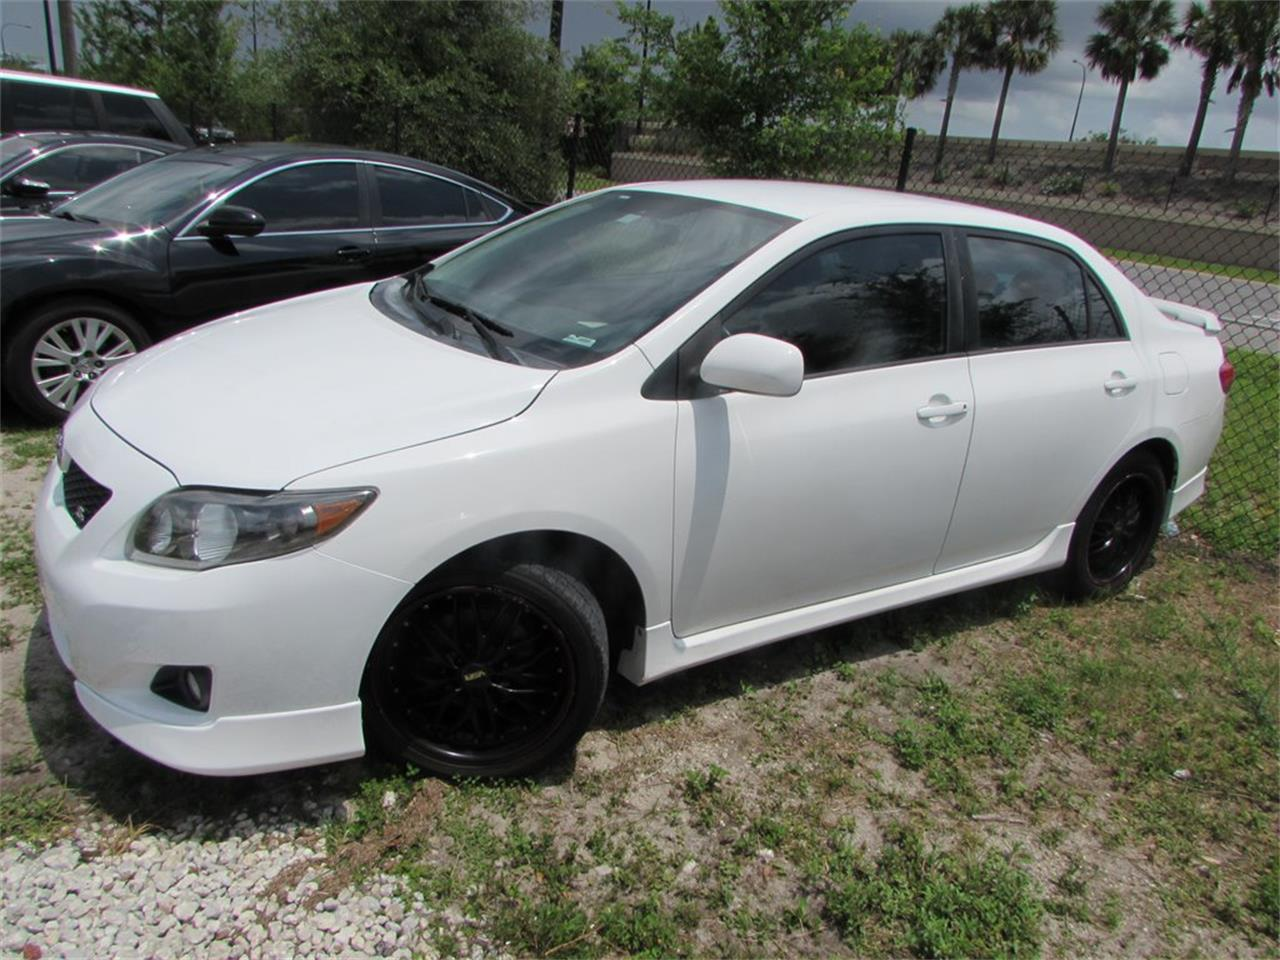 Large Picture of 2009 Toyota Corolla - $7,700.00 - Q282